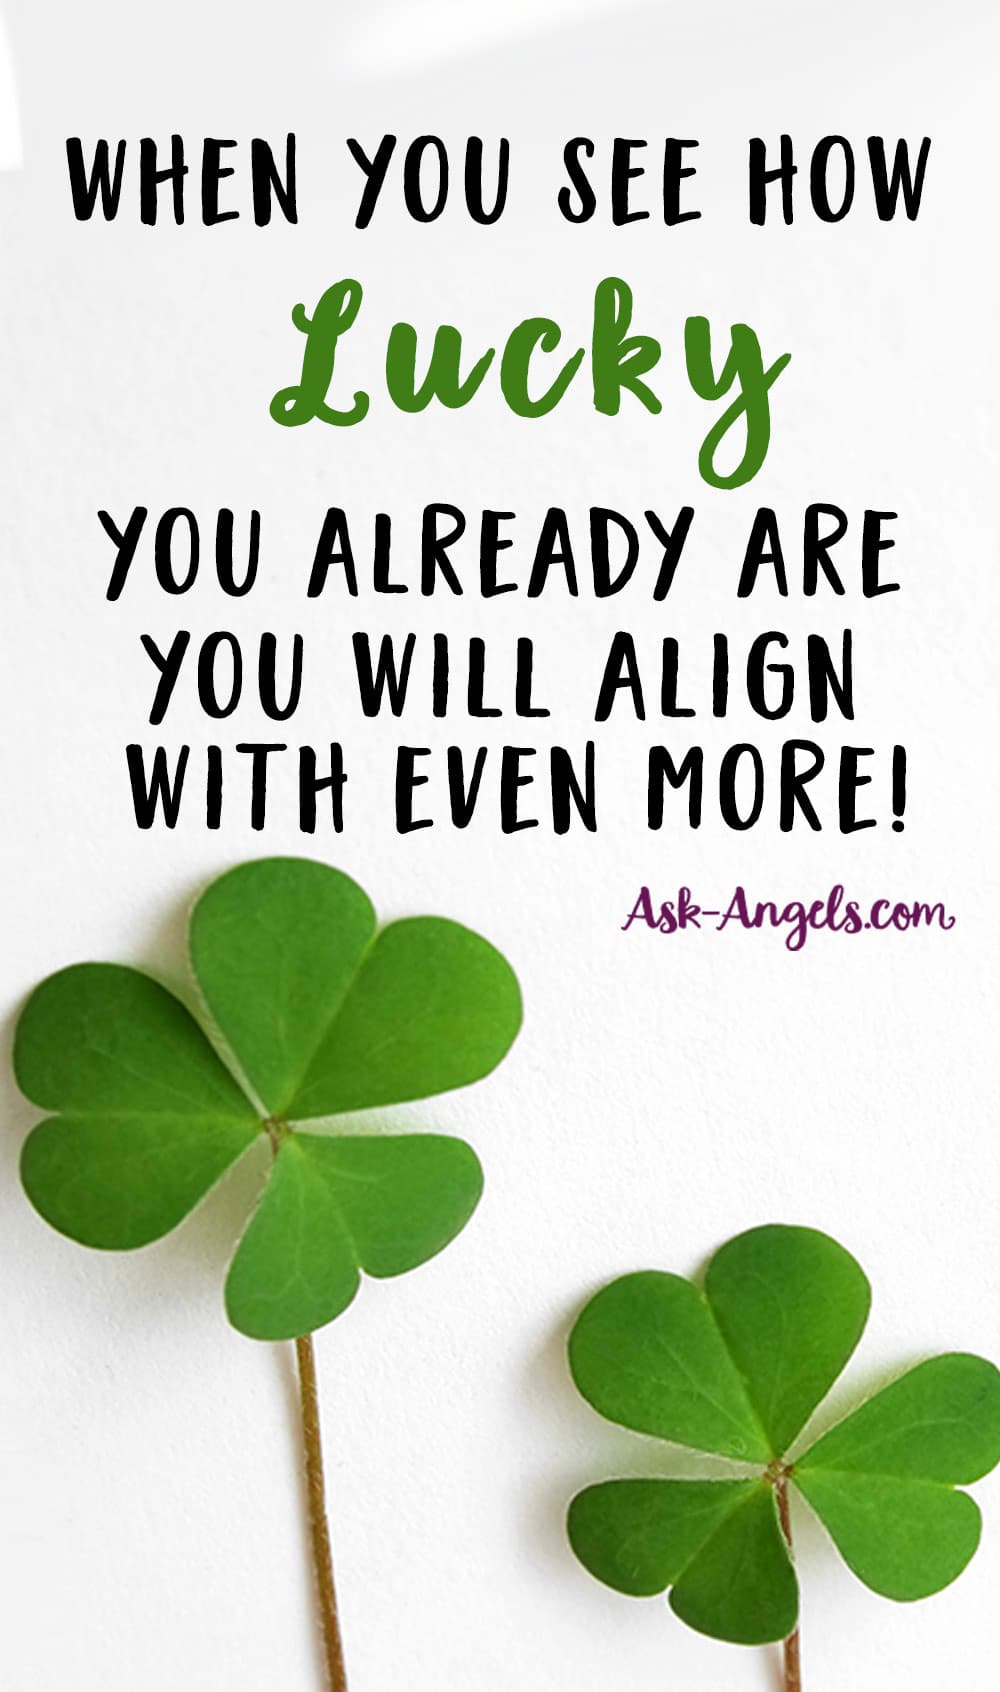 How to Attract Luck